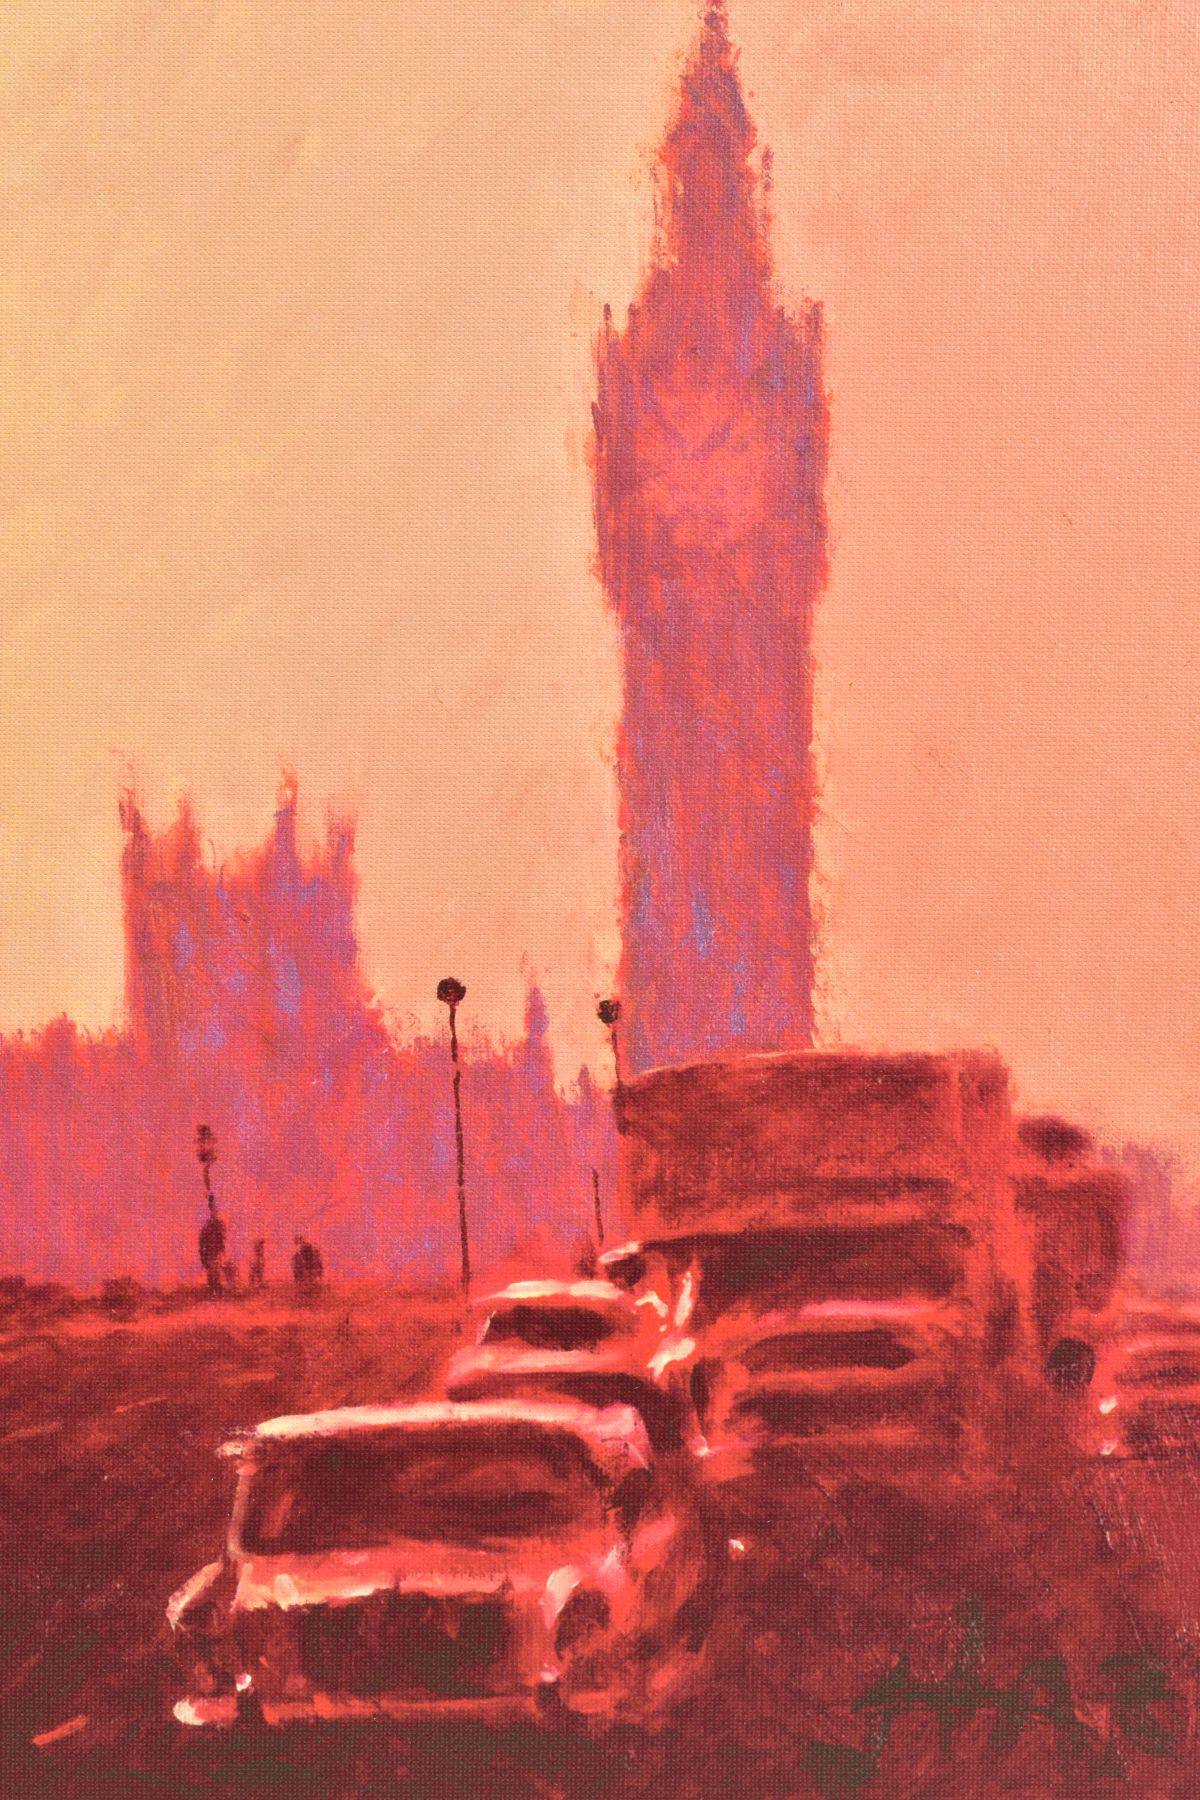 ROLF HARRIS (AUSTRALIAN 1930), 'Fifties Rush Hour', a Limited Edition print of a London skyline, - Image 2 of 6